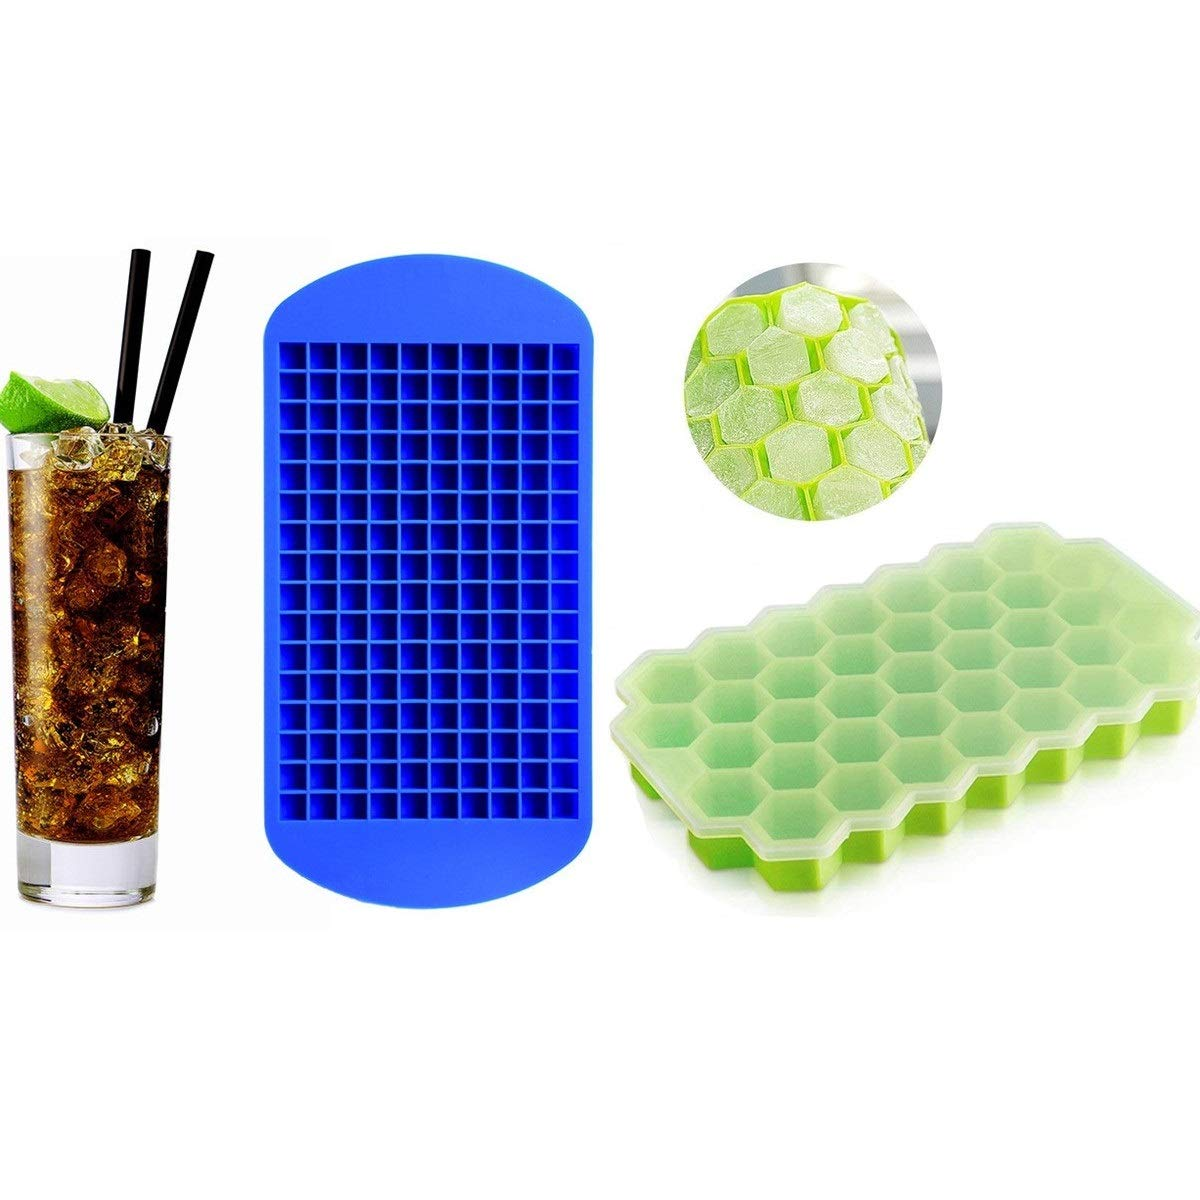 Ice Cube Trays Silicone Mini Ice Cube Molds Release Ice Cube Trays with Lids for Chilling Whiskey, Cocktail, Beverages and More, Easy Release & BPA Free,2 PACK (Ice Cube+Ice Honeycomb)